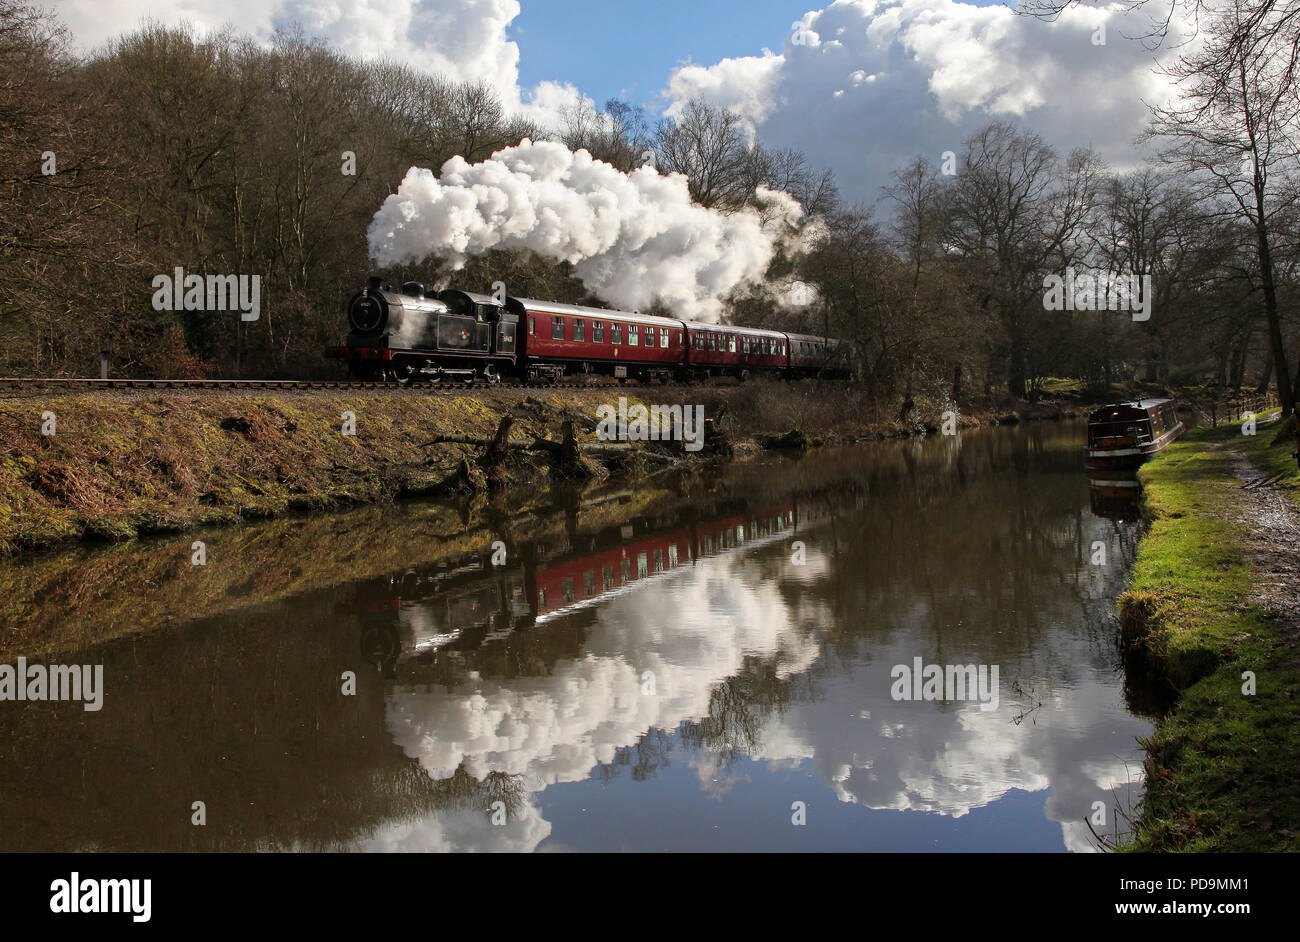 69621 heads away from Consall forge  on the Churnet Valley Railway 21.2.15 - Stock Image